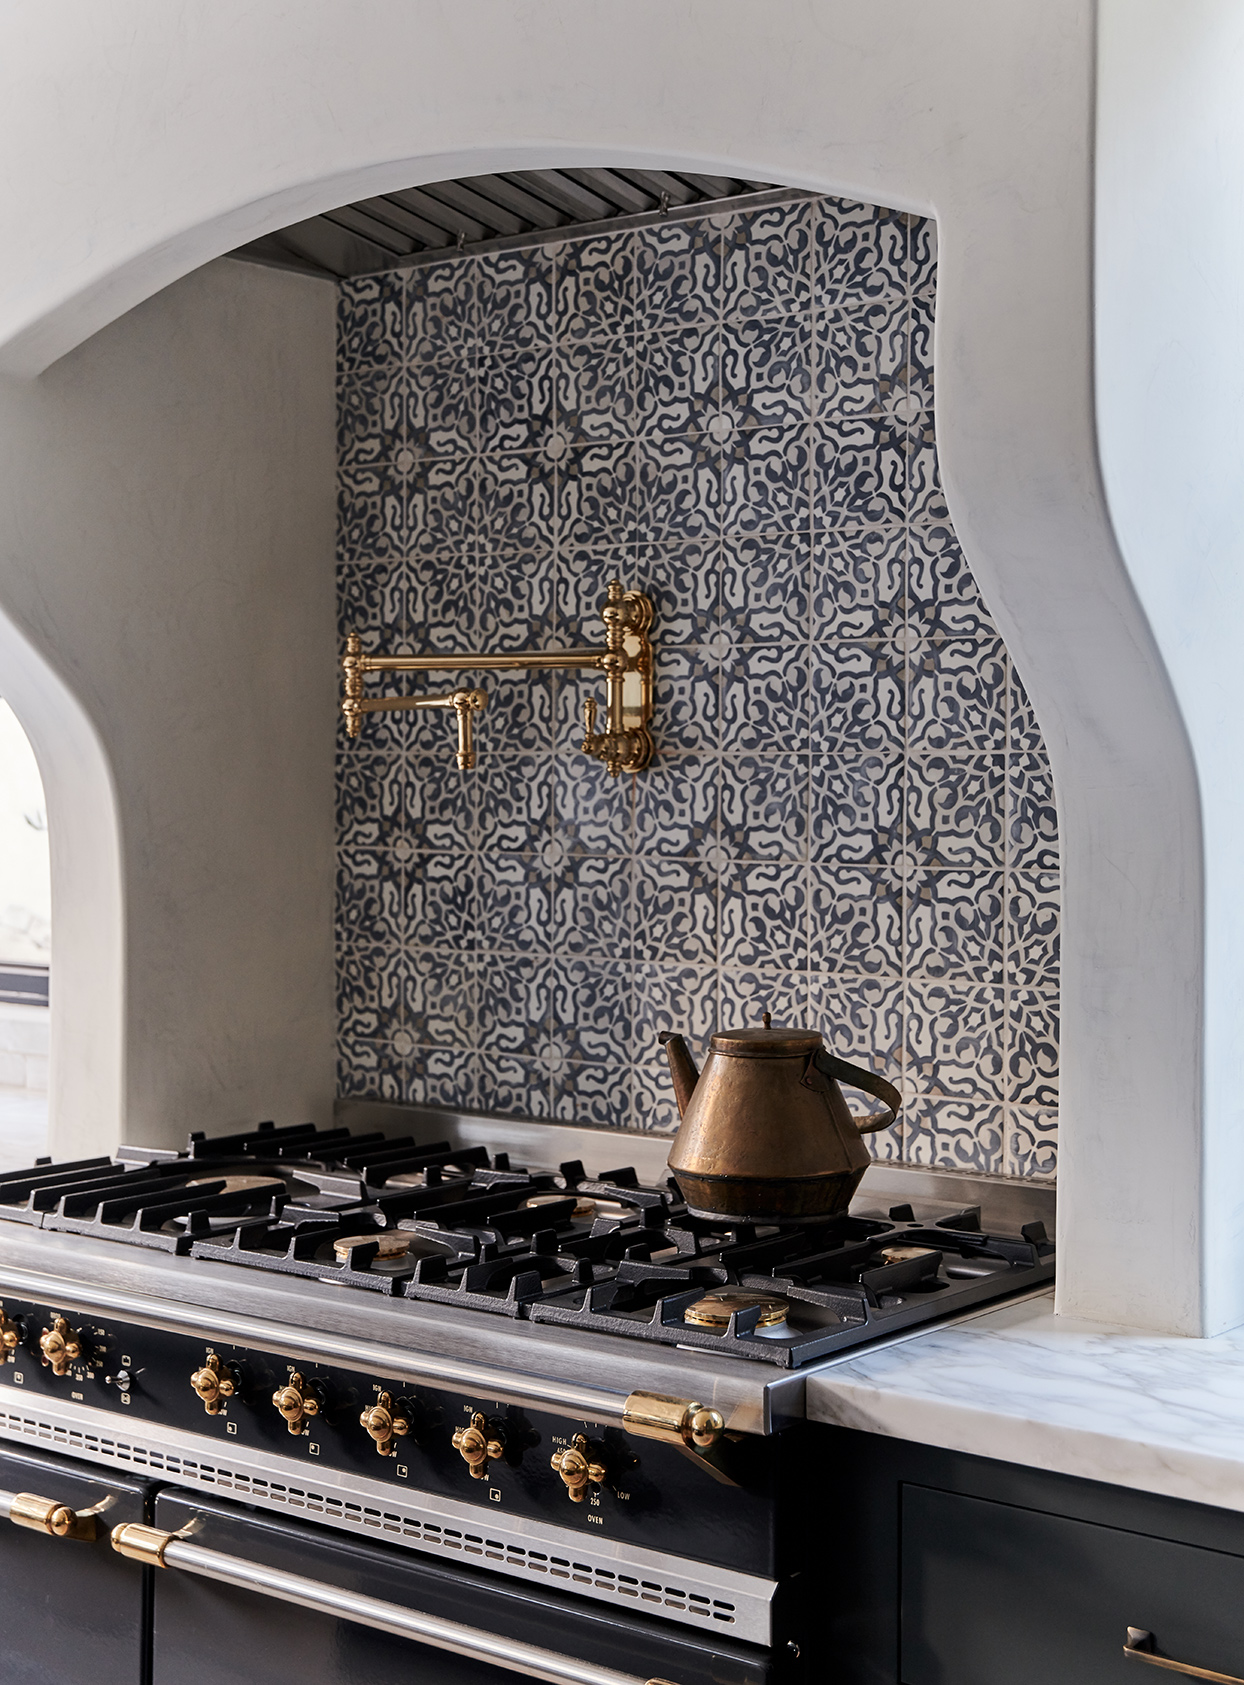 11 Unique Tile Backsplashes That Make